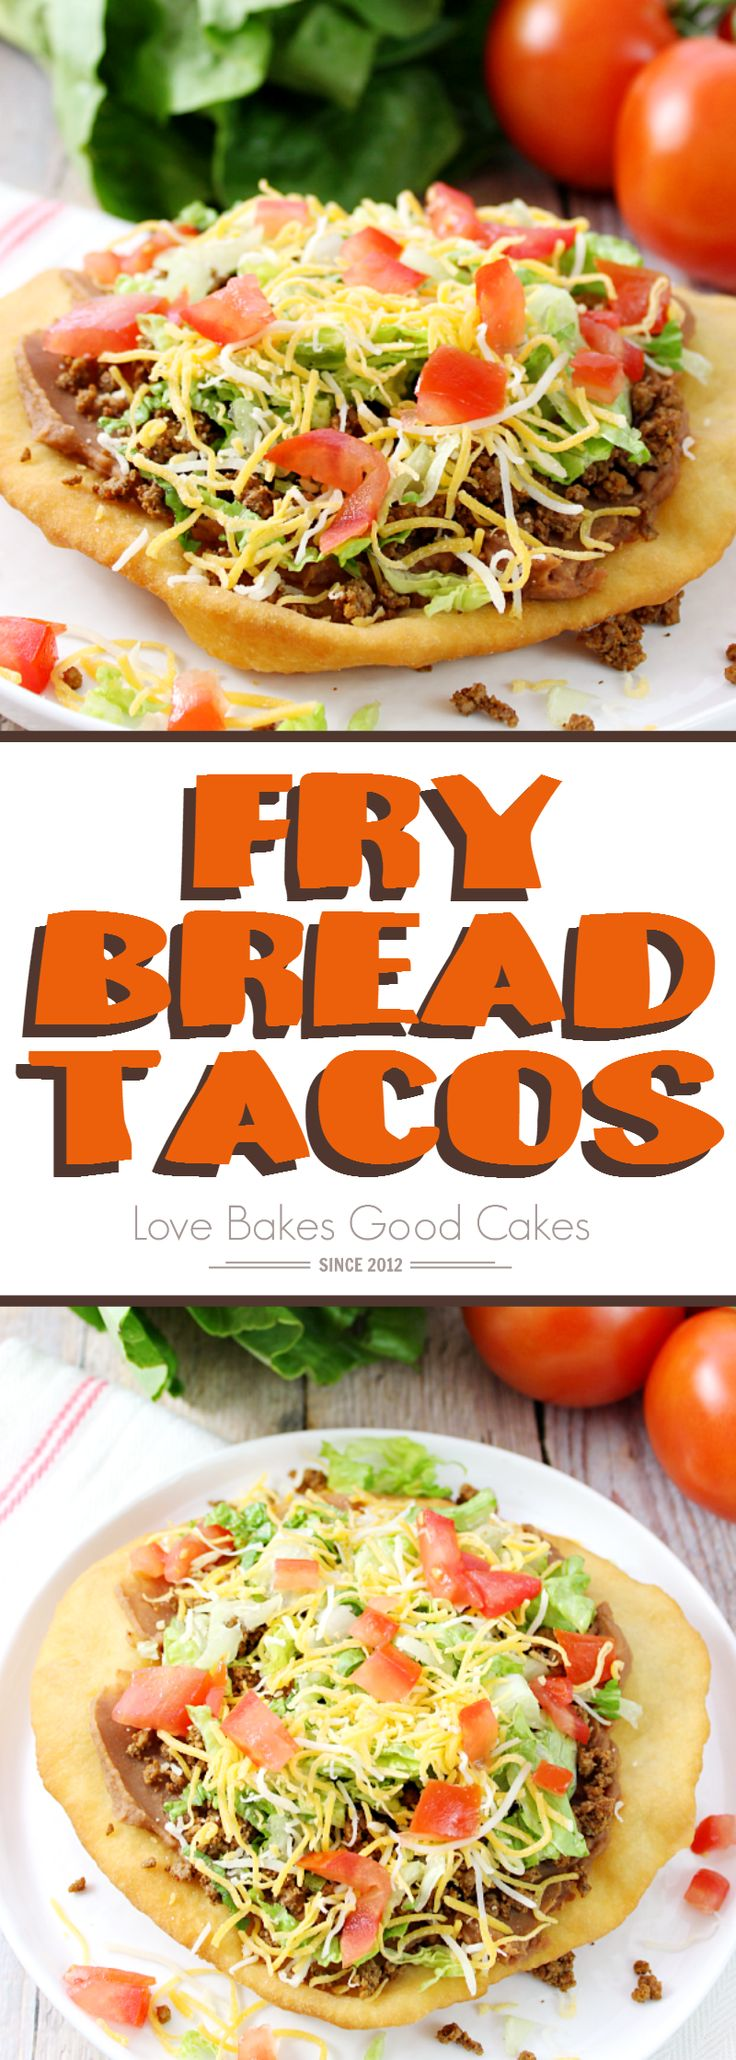 Change up your boring dinner routine with this easy recipe for Fry Bread Tacos (aka Navajo Tacos). A quick and simple bread dough is quickly fried and then topped with your favorite taco toppings!: